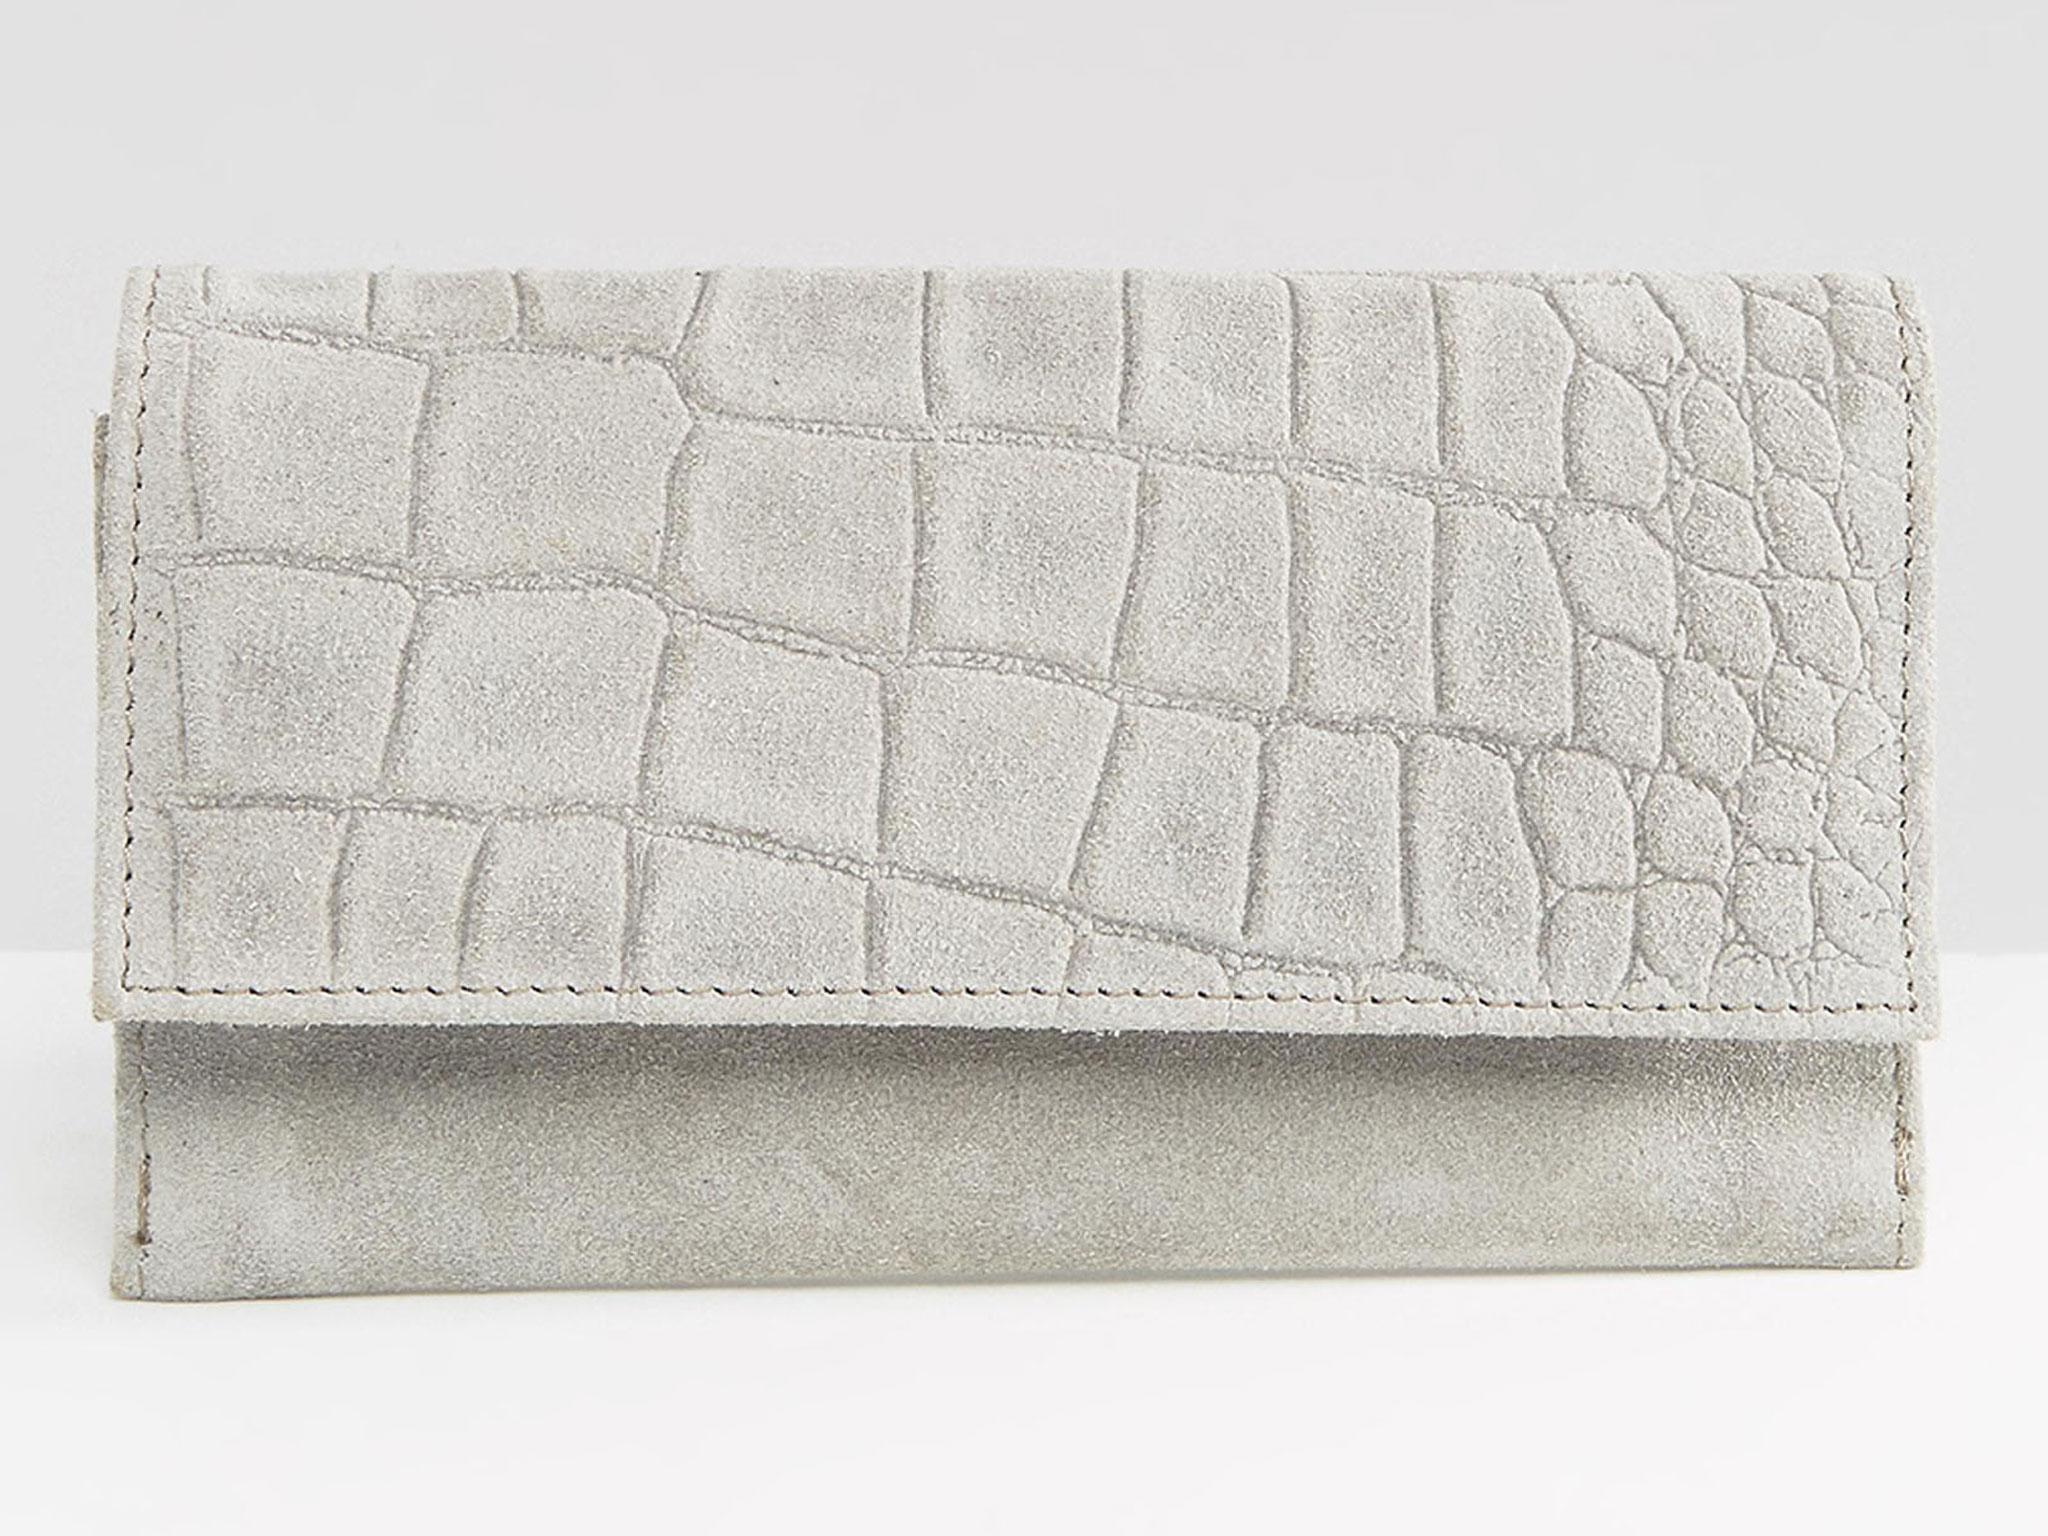 10 best women's wallets and purses | The